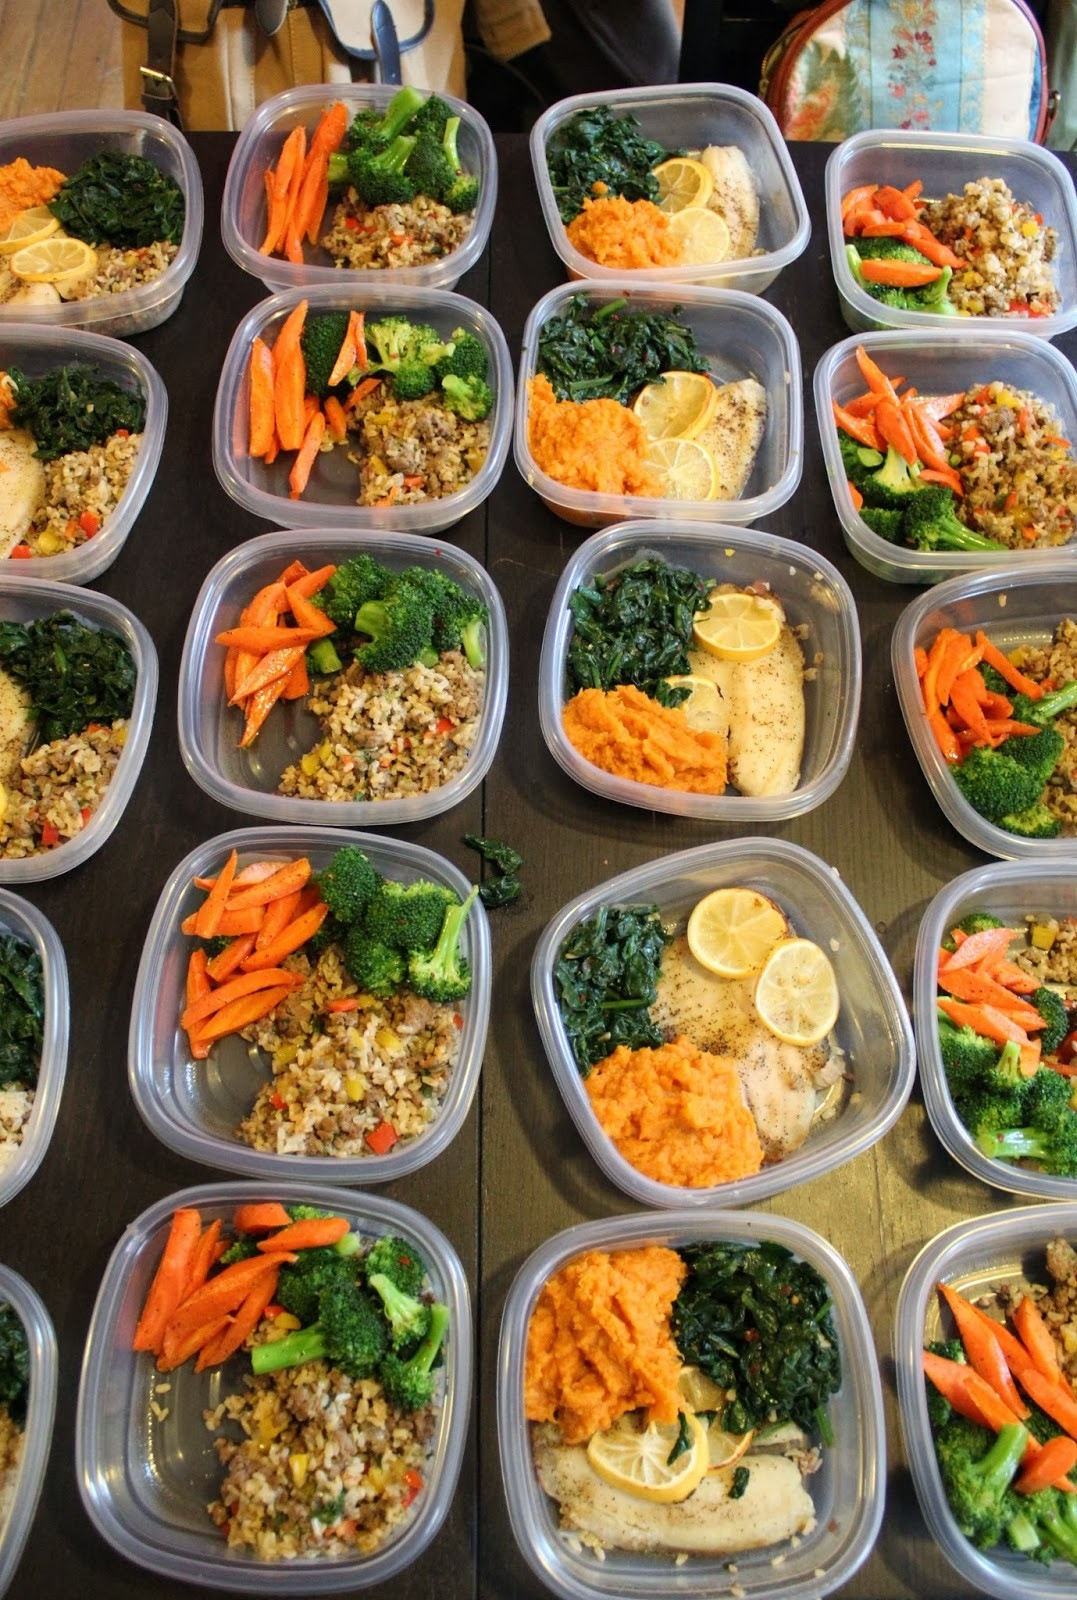 Weekday Dinner Ideas  Healthy Meal Prep Ideas For The WeekWritings and Papers